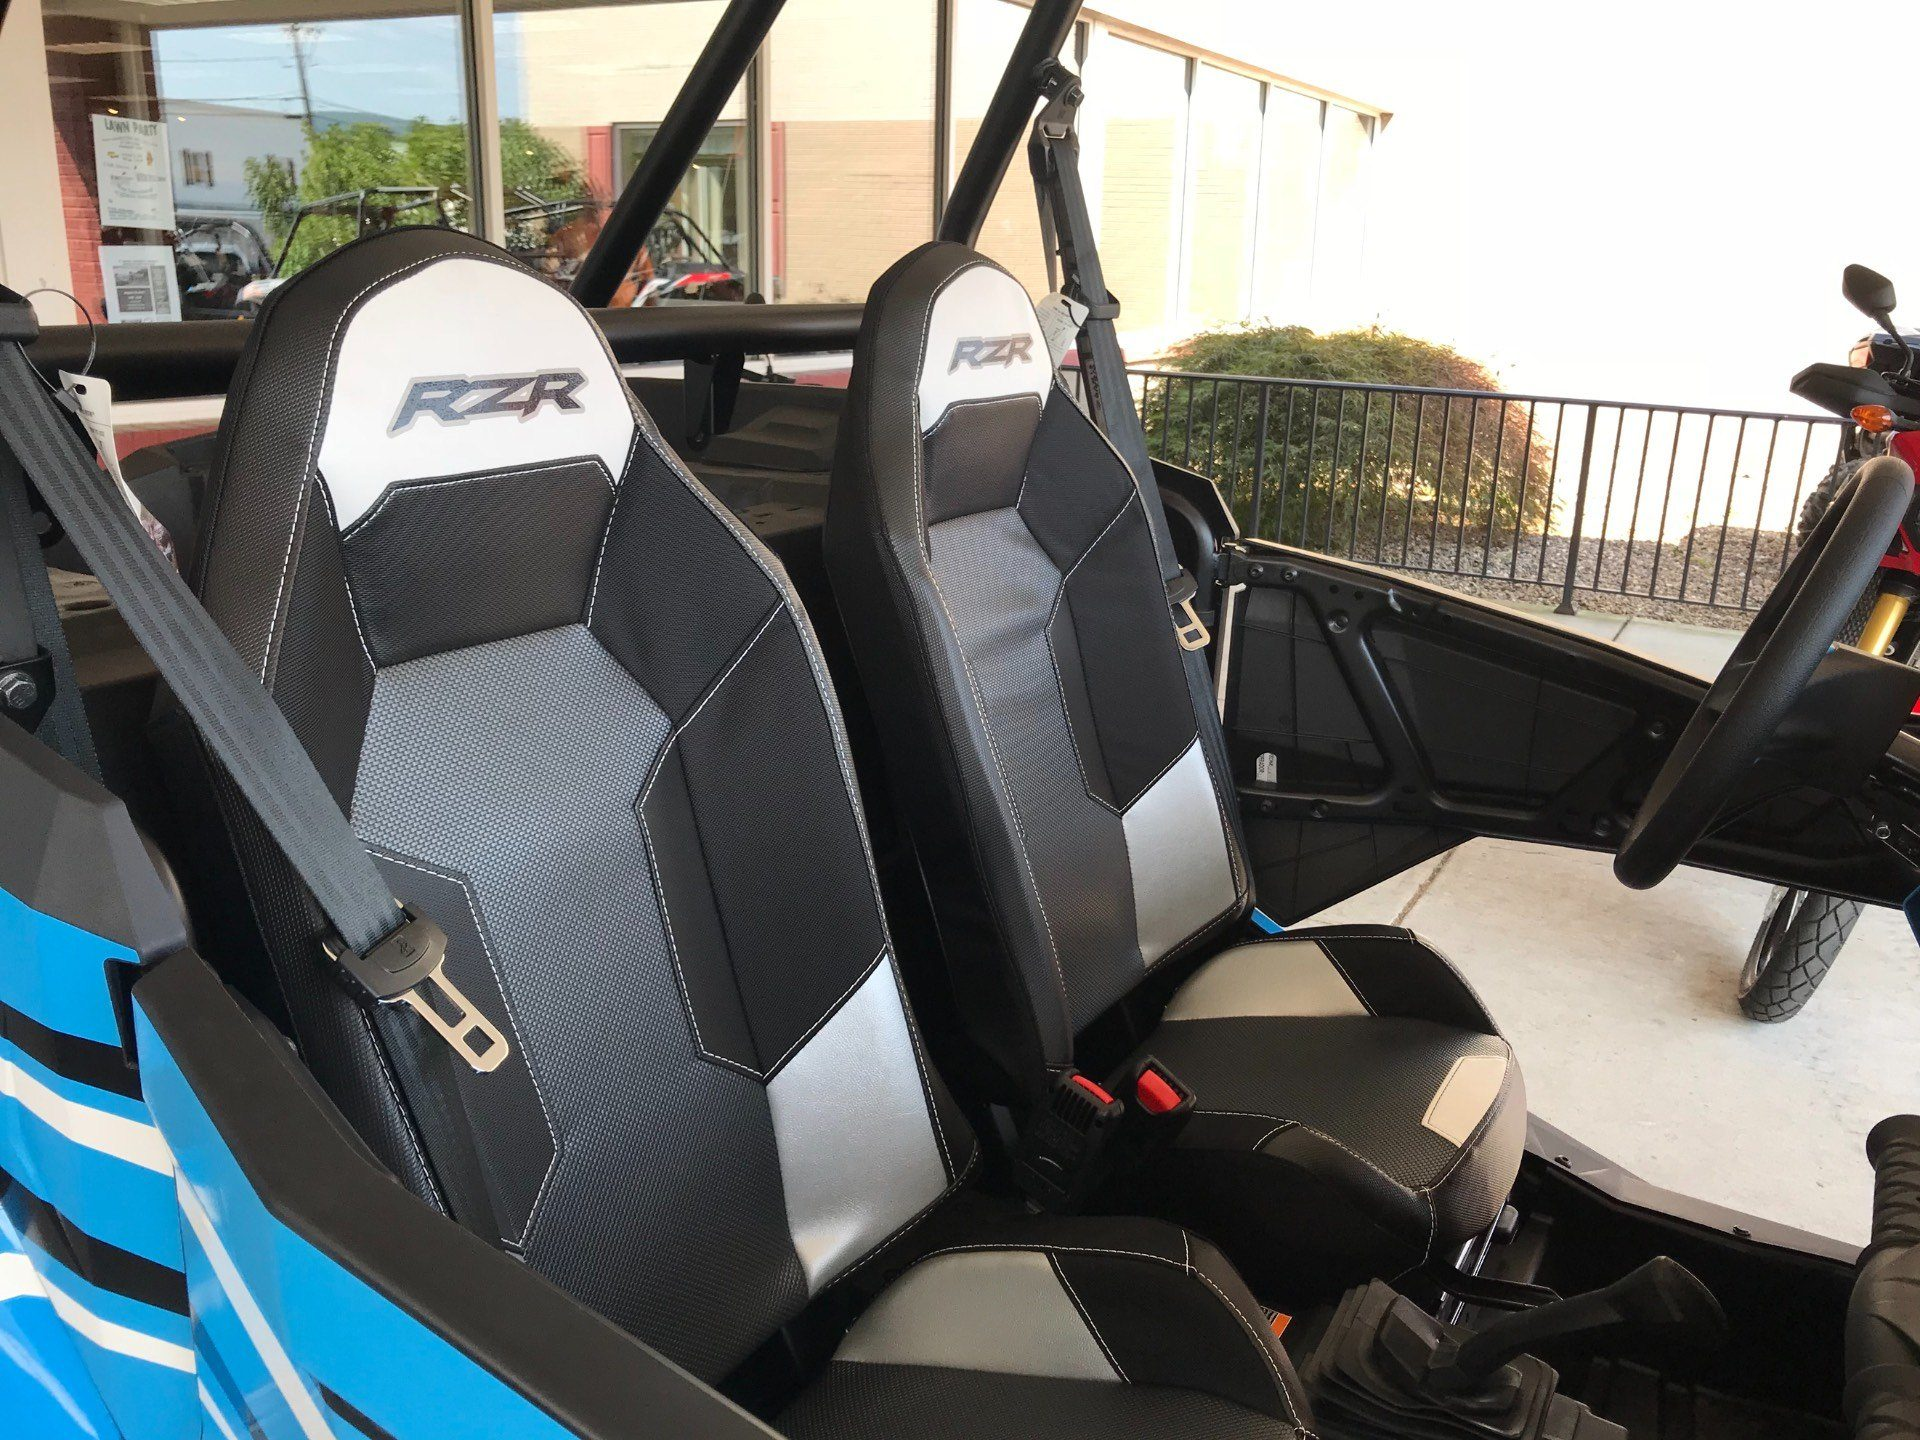 2019 Polaris RZR XP 1000 in Petersburg, West Virginia - Photo 7